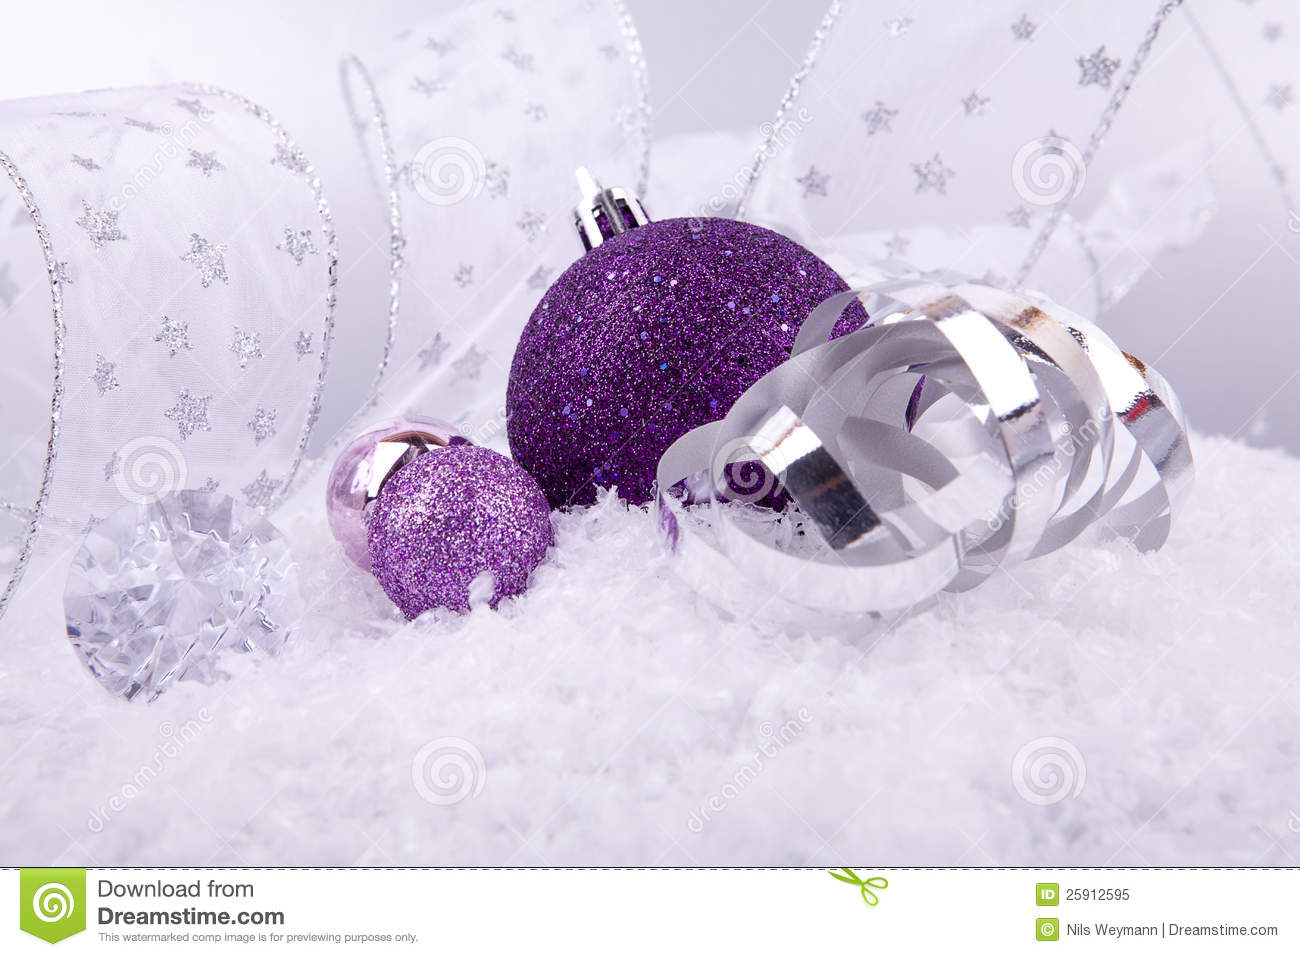 Lavender christmas ornaments - Christmas Decoration Purple Silver On Snow